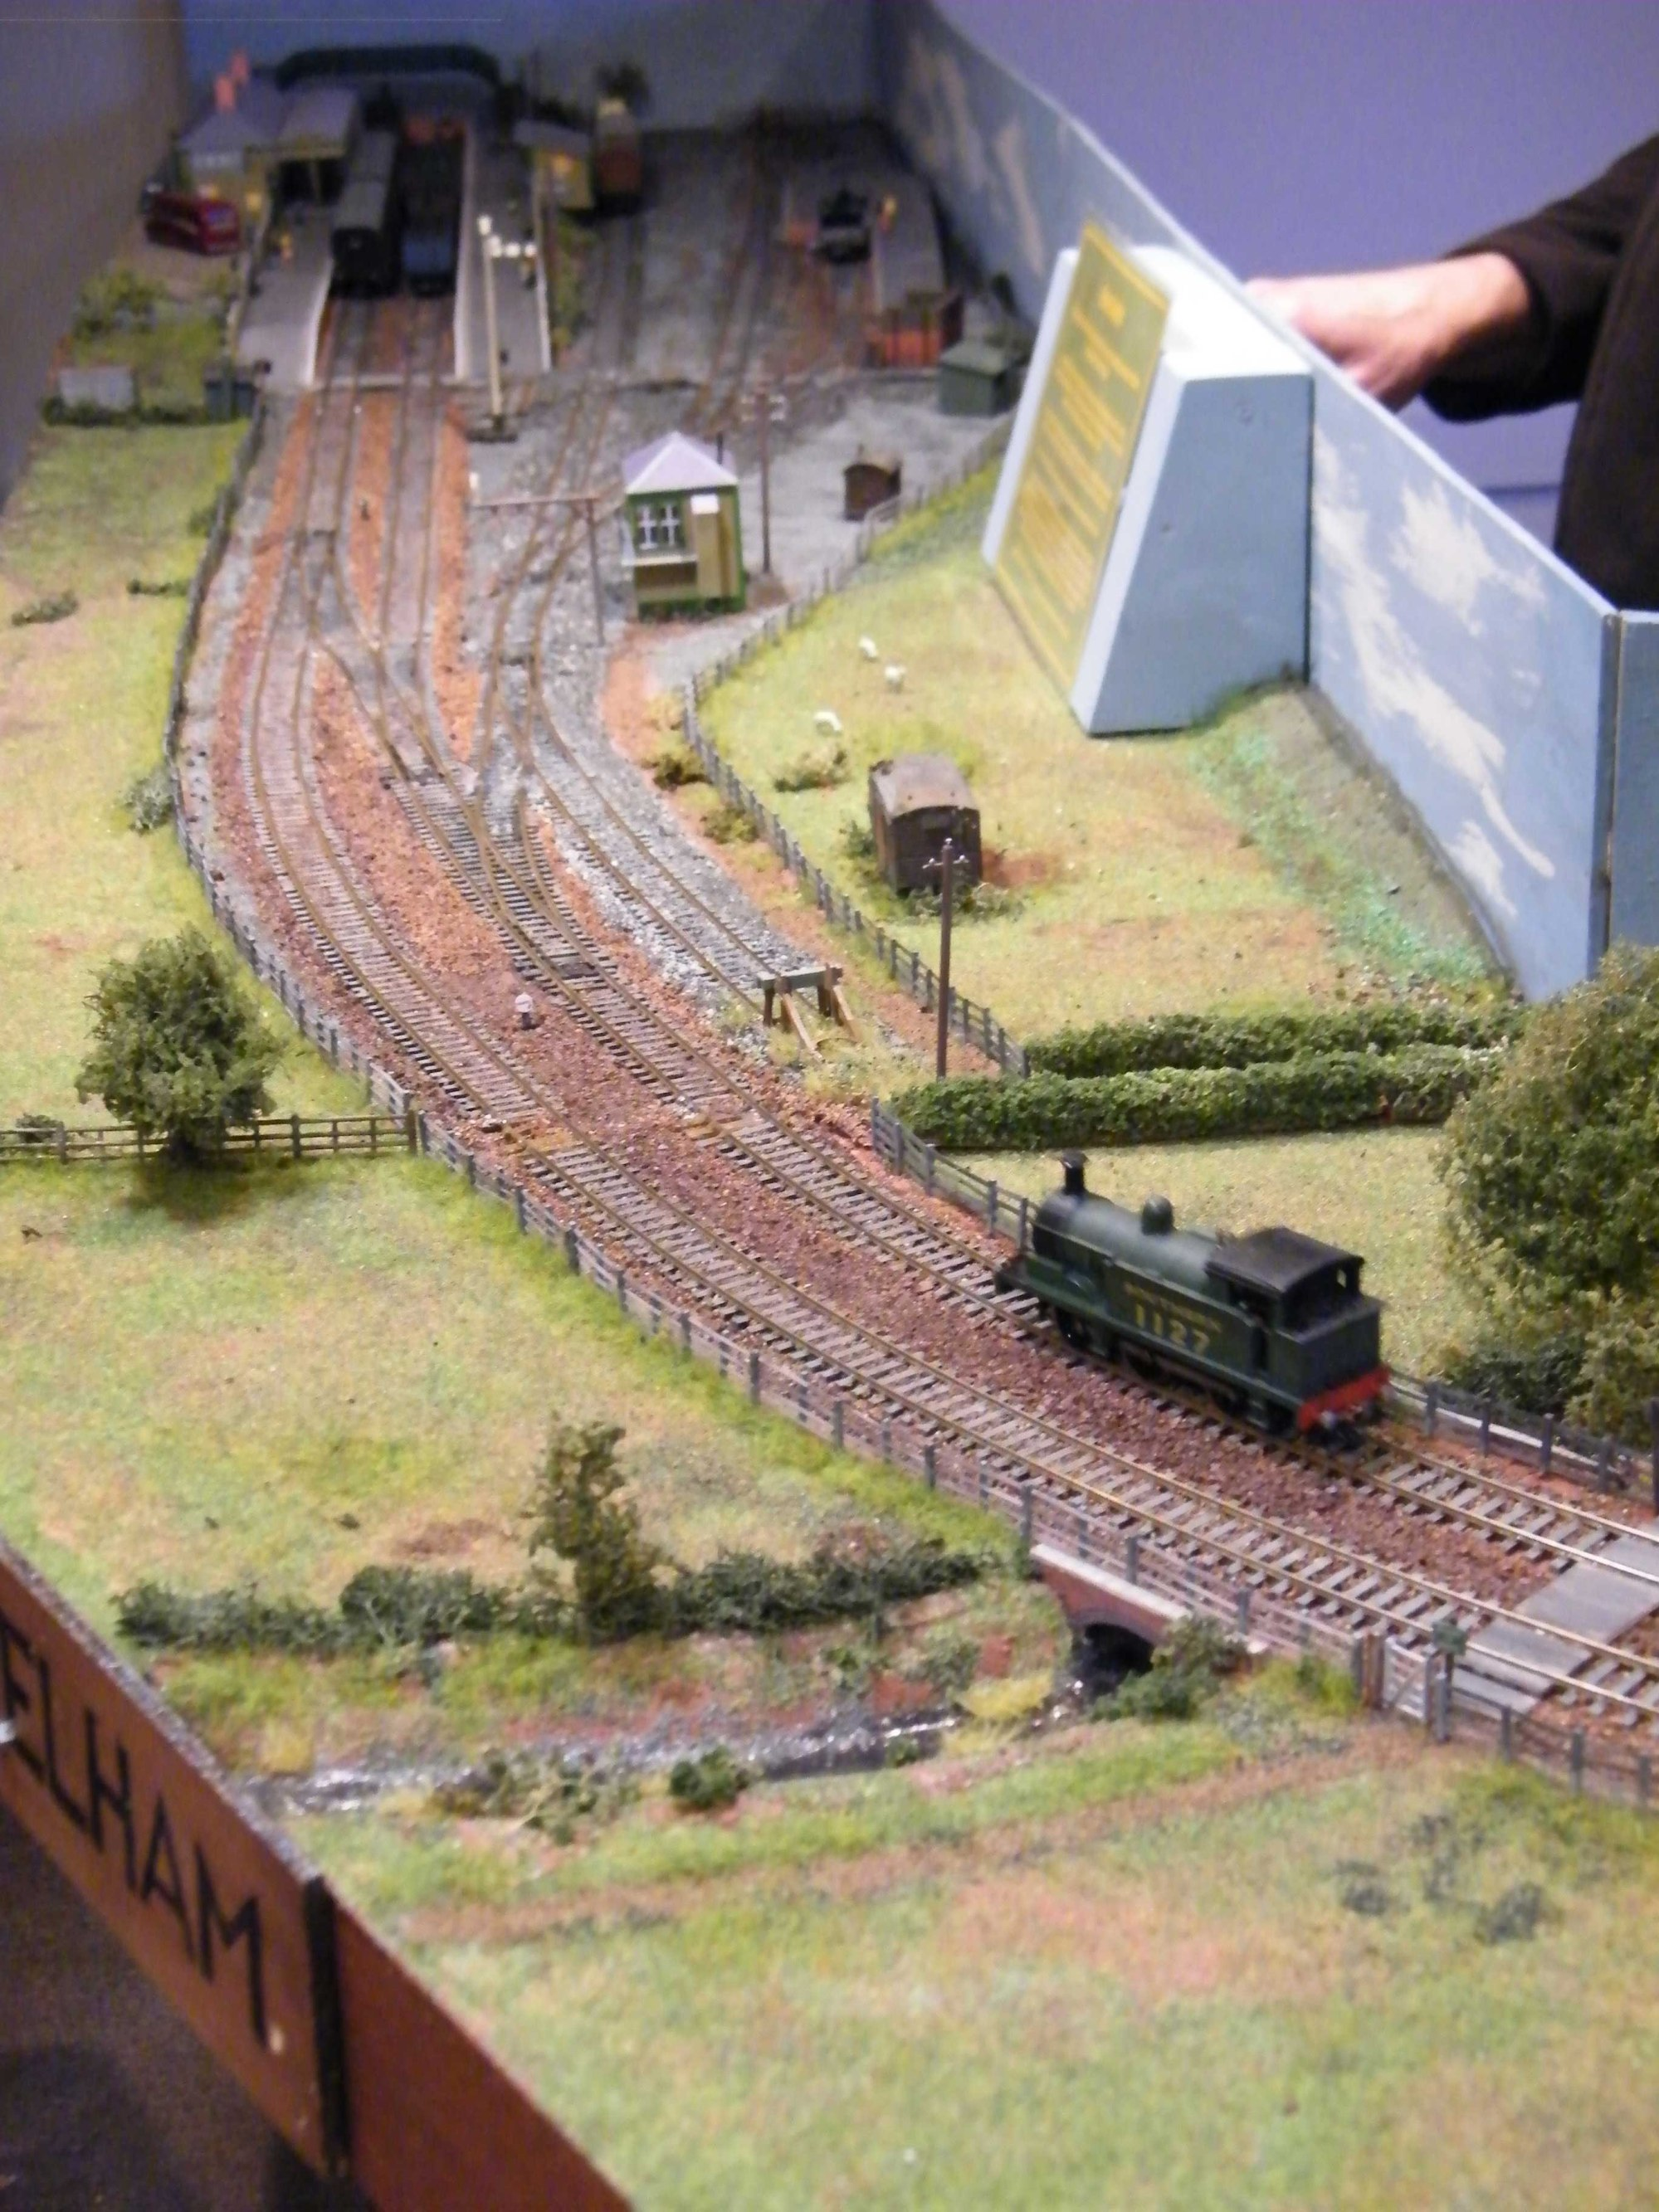 hight resolution of work on wiring elham valley model railway club s new layout